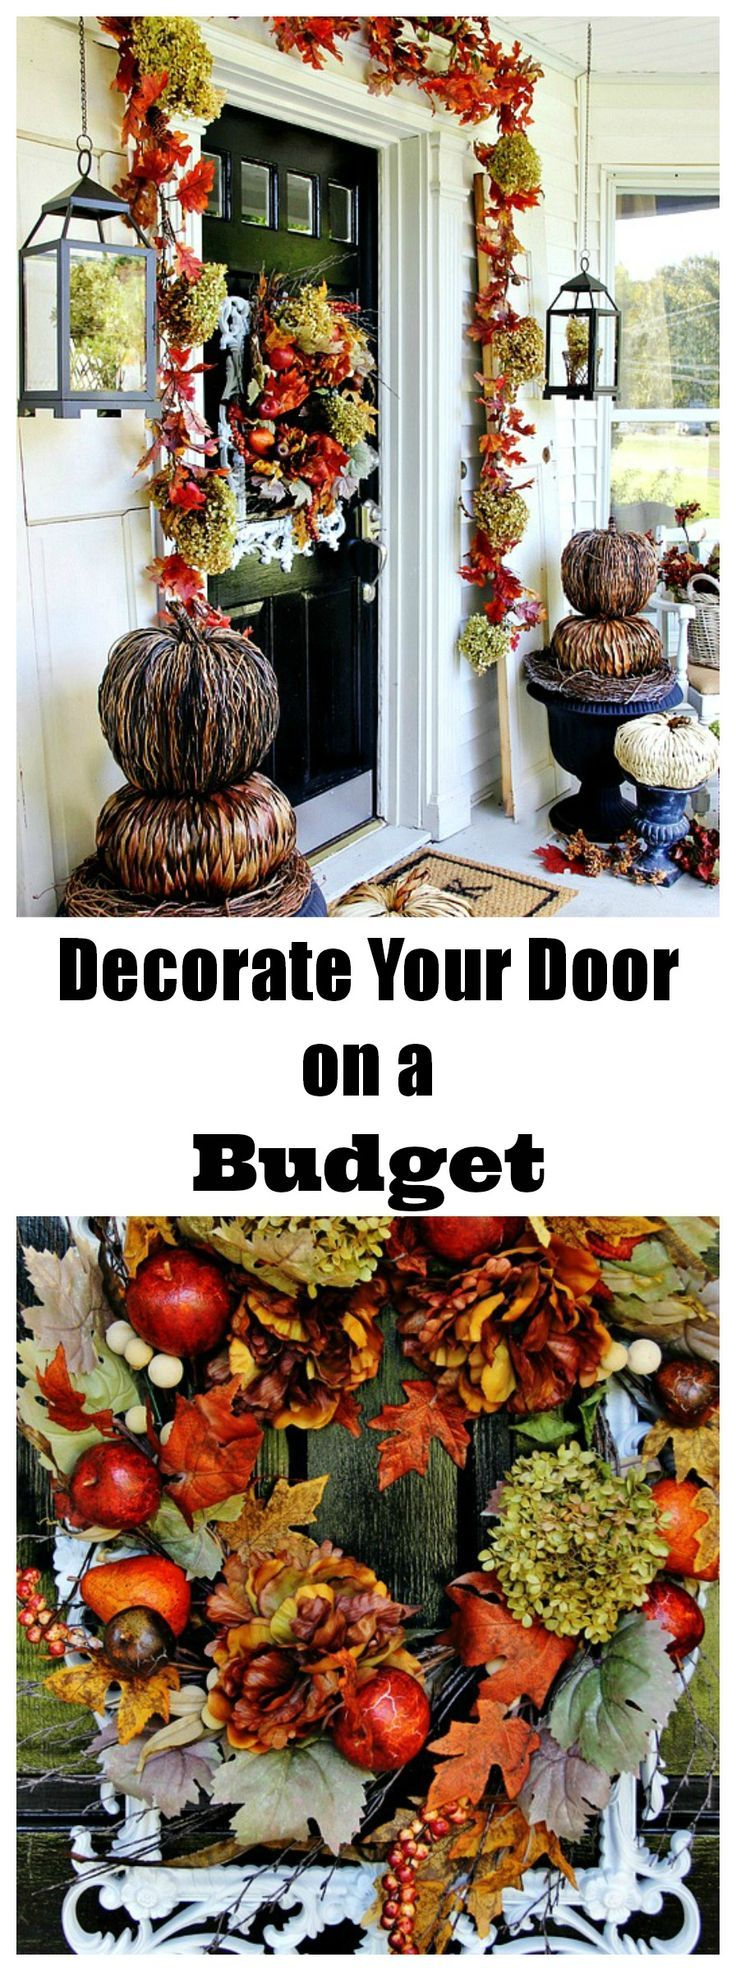 Budget Friendly Front Porch Fall Decor Ideas | Thistlewood Farms